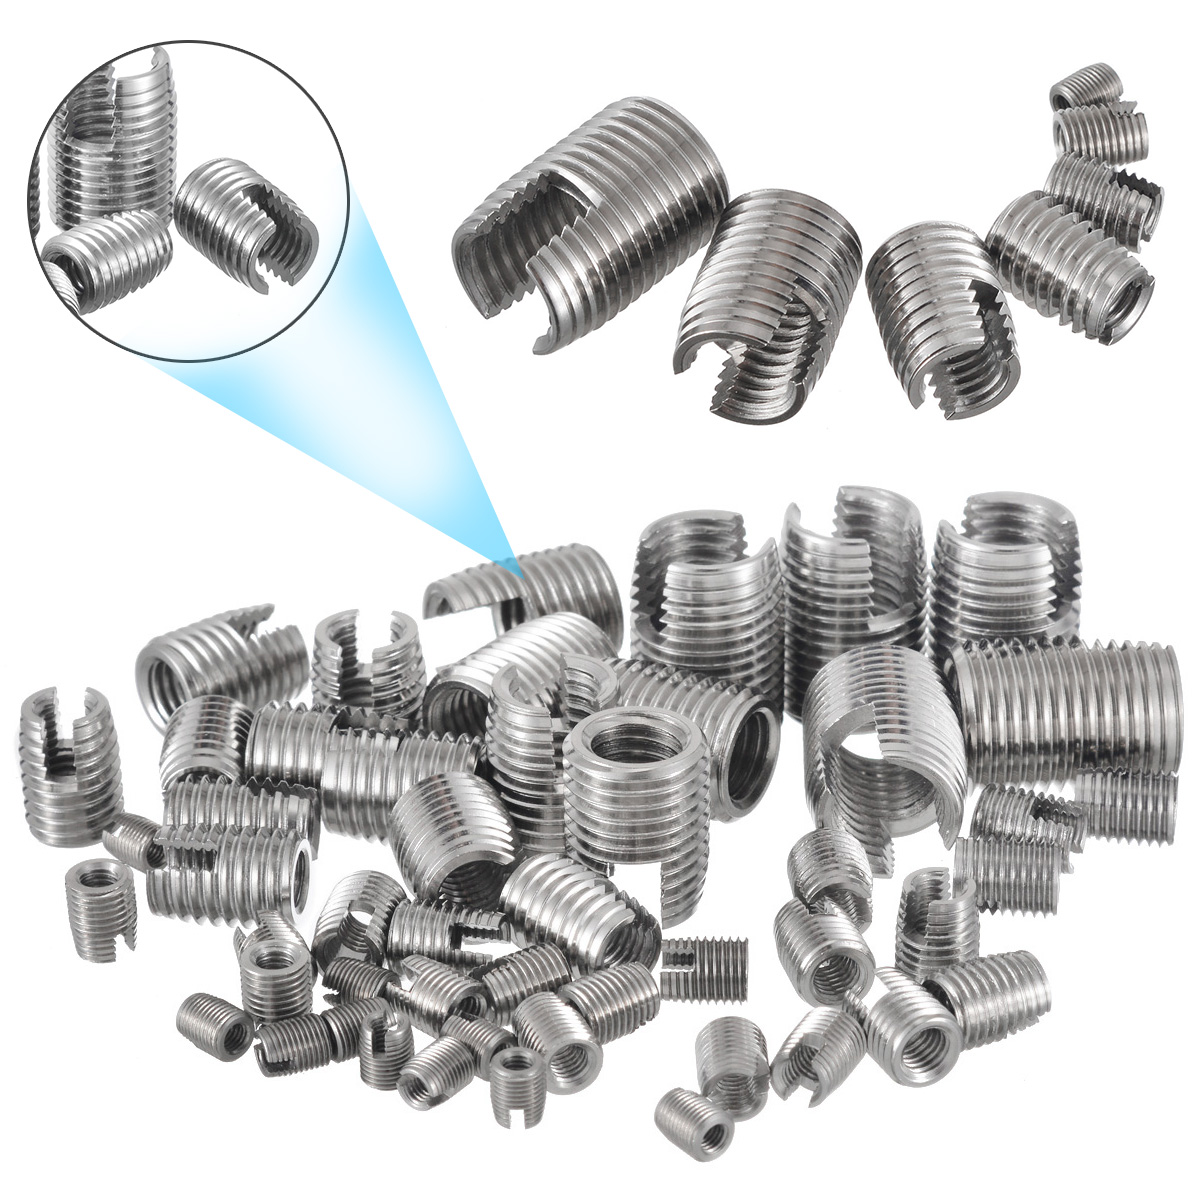 50pcs/set Silver Stainless Steel Thread Repair Insert Kit M3 M4 M5 M6 M8 M10 M12  Helical Insert Self Tapping Slotted Screw50pcs/set Silver Stainless Steel Thread Repair Insert Kit M3 M4 M5 M6 M8 M10 M12  Helical Insert Self Tapping Slotted Screw